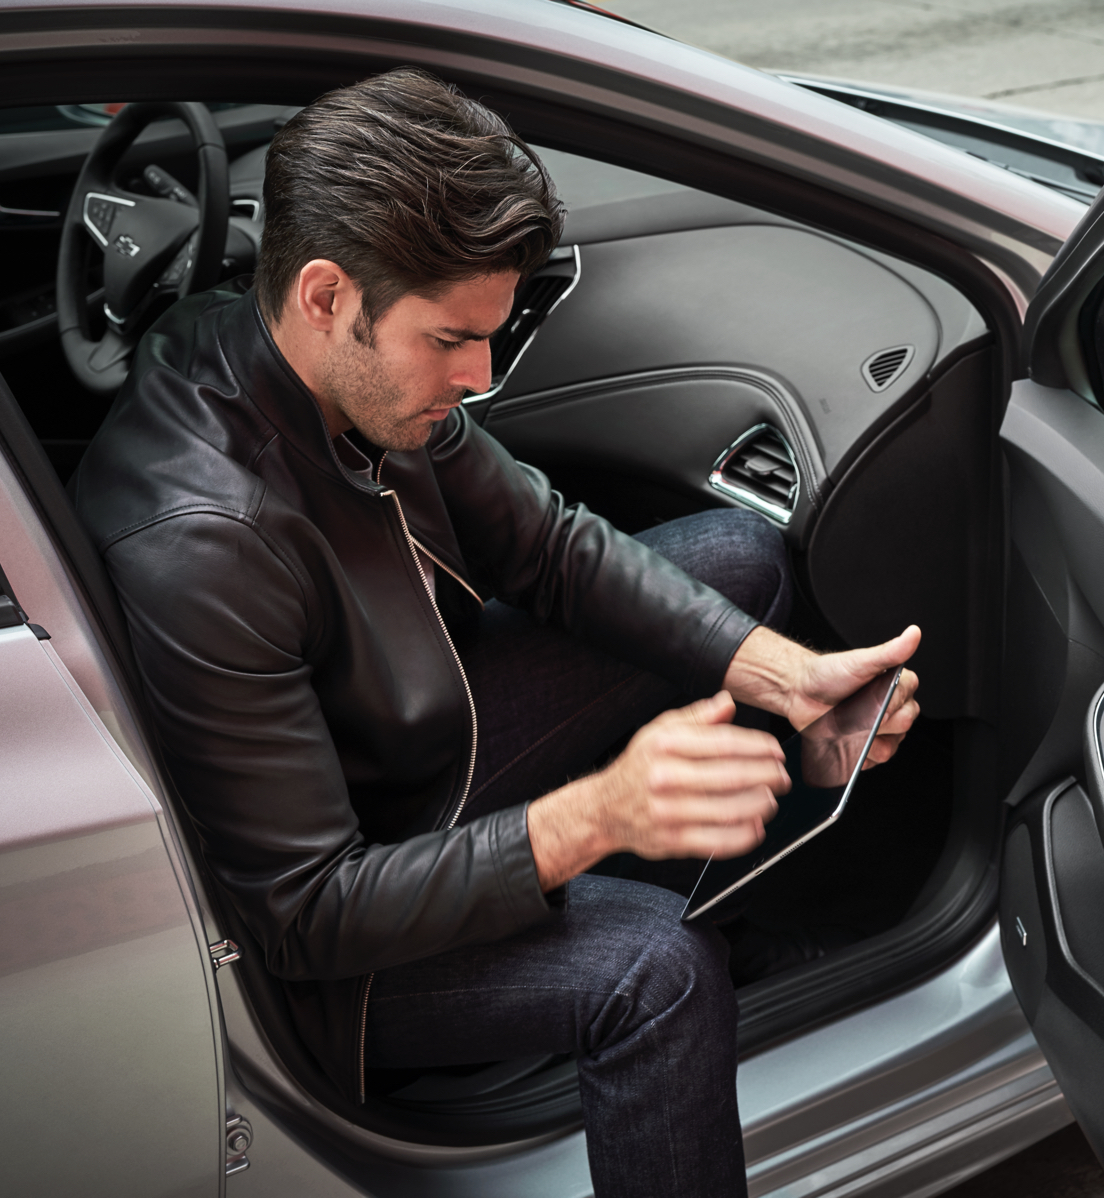 Man on tablet sitting in car